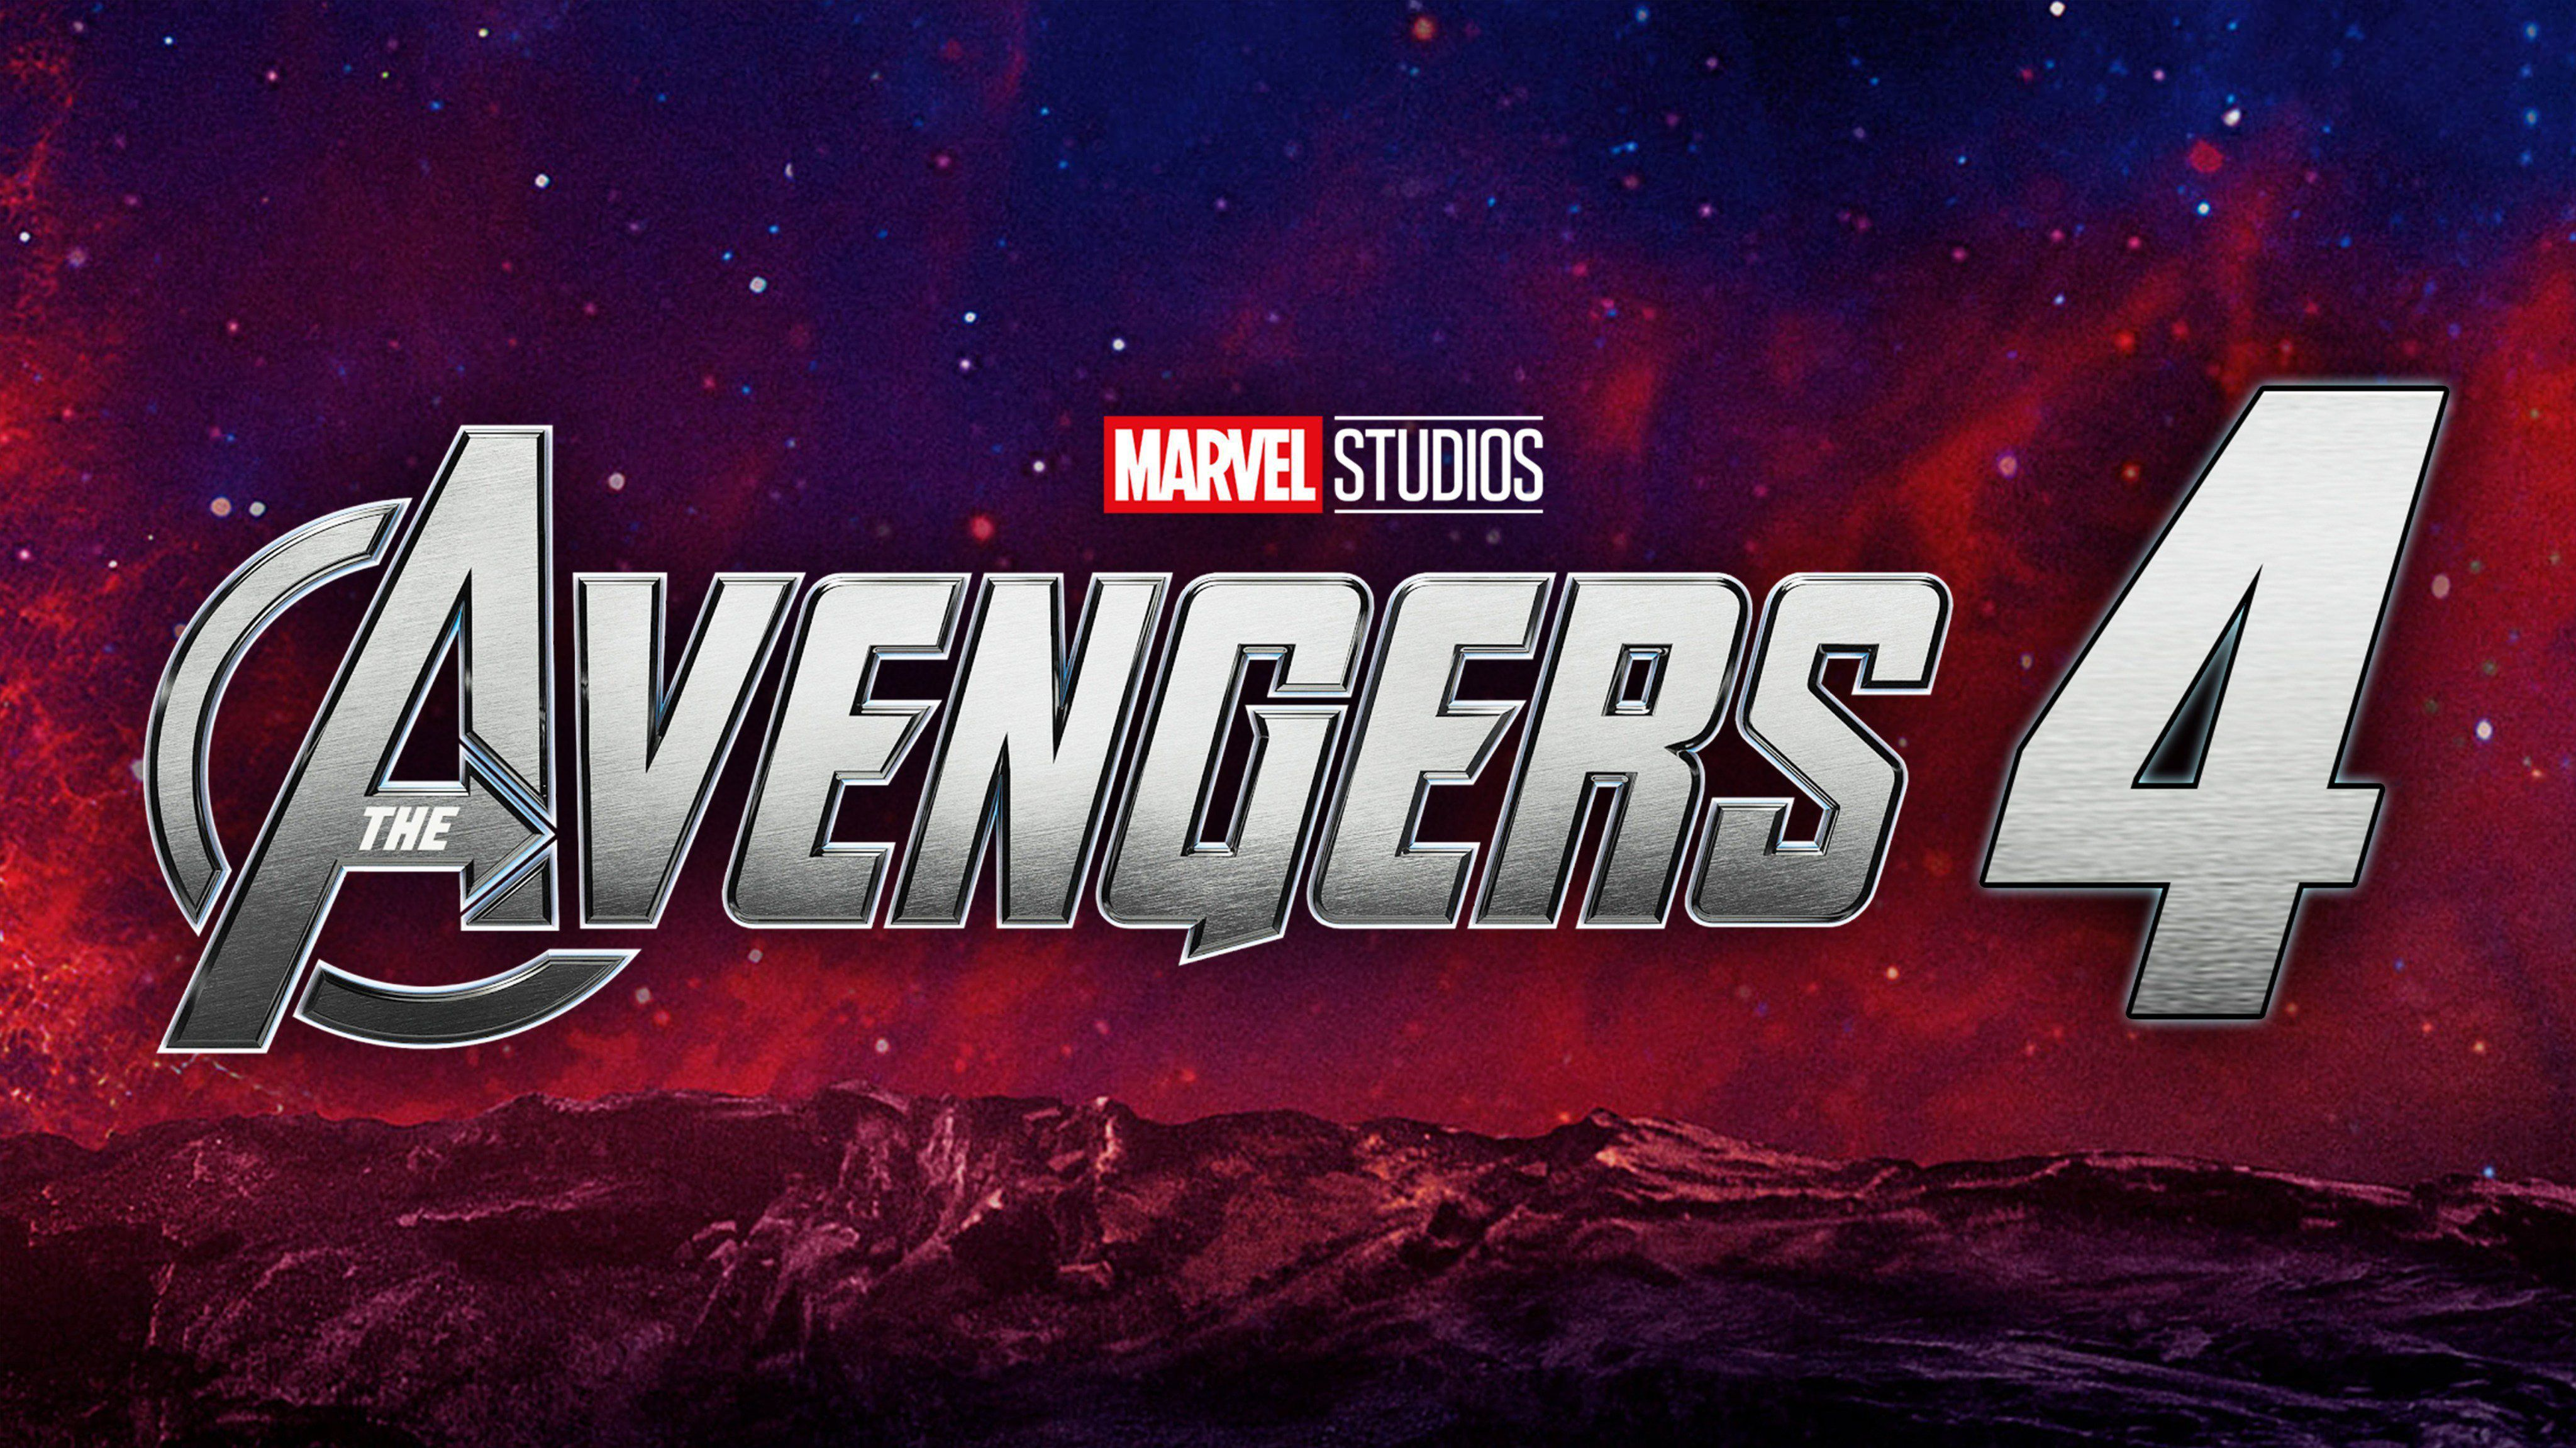 4k Marvel Studios Avengers Endgame Wallpapers Iphone Android And Desktop The Ramenswag